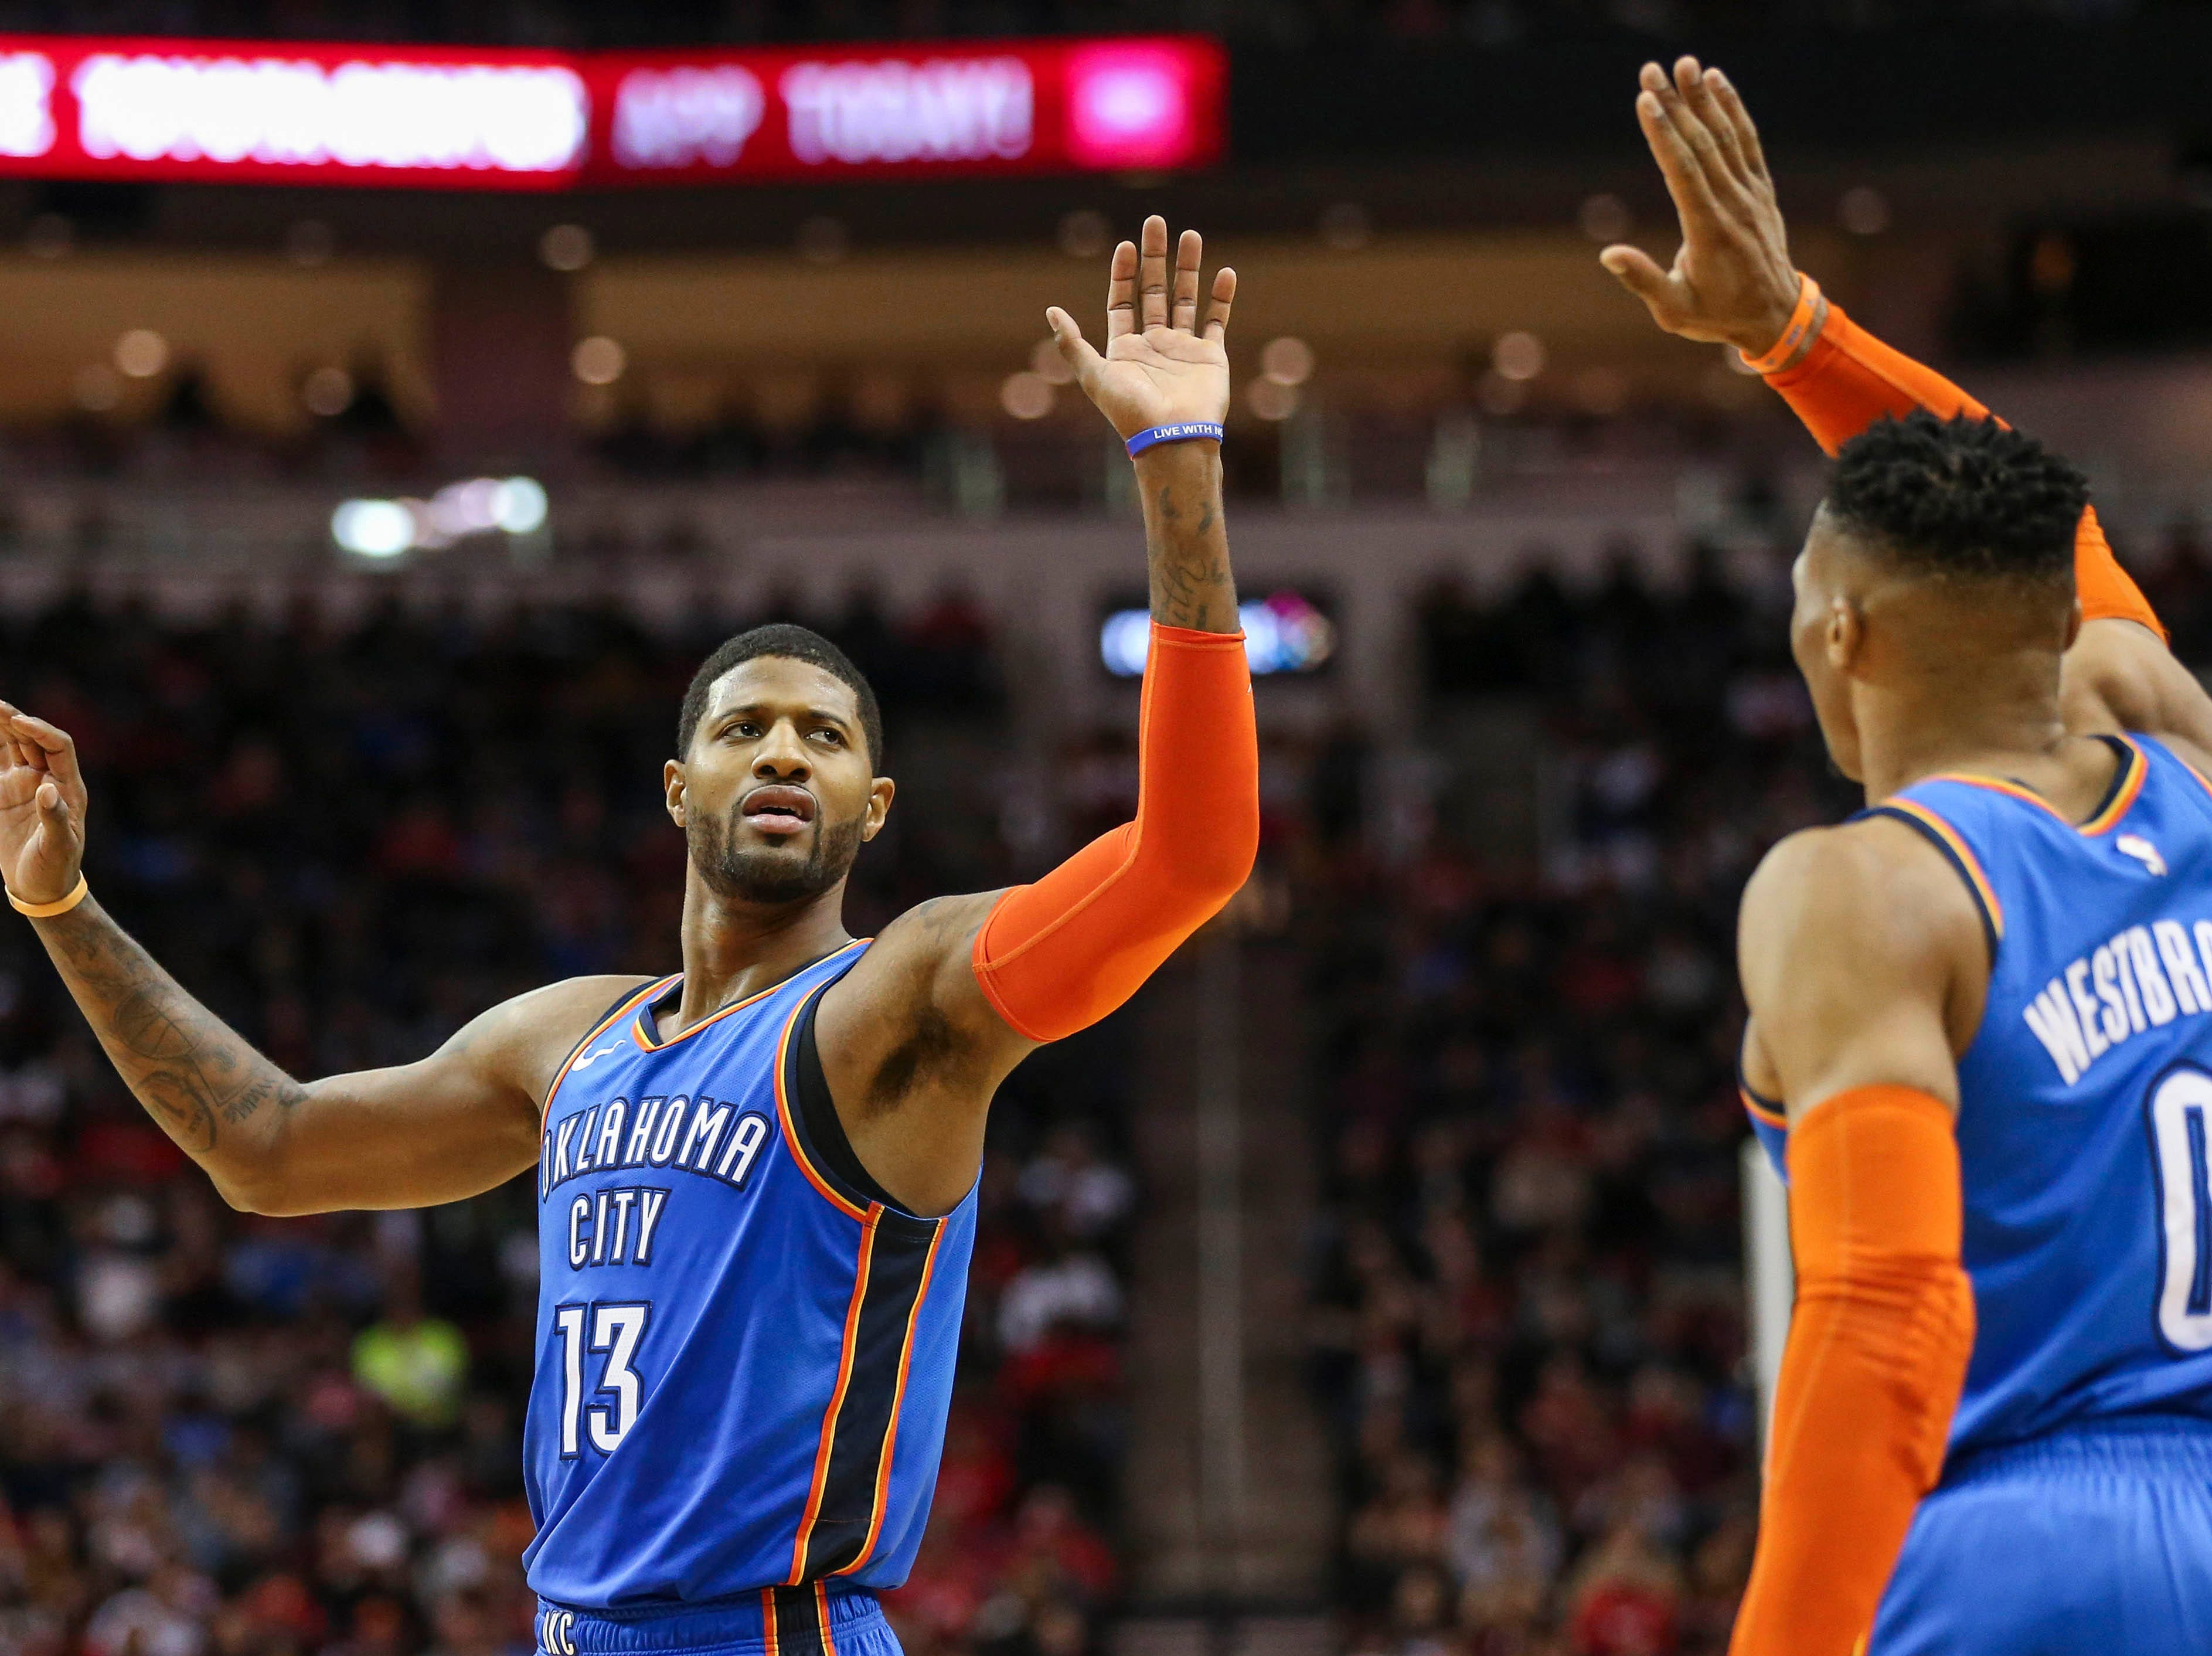 Feb. 9: Oklahoma City Thunder forward Paul George (13) celebrates with guard Russell Westbrook (0) after a play during the fourth quarter against the Houston Rockets at Toyota Center.